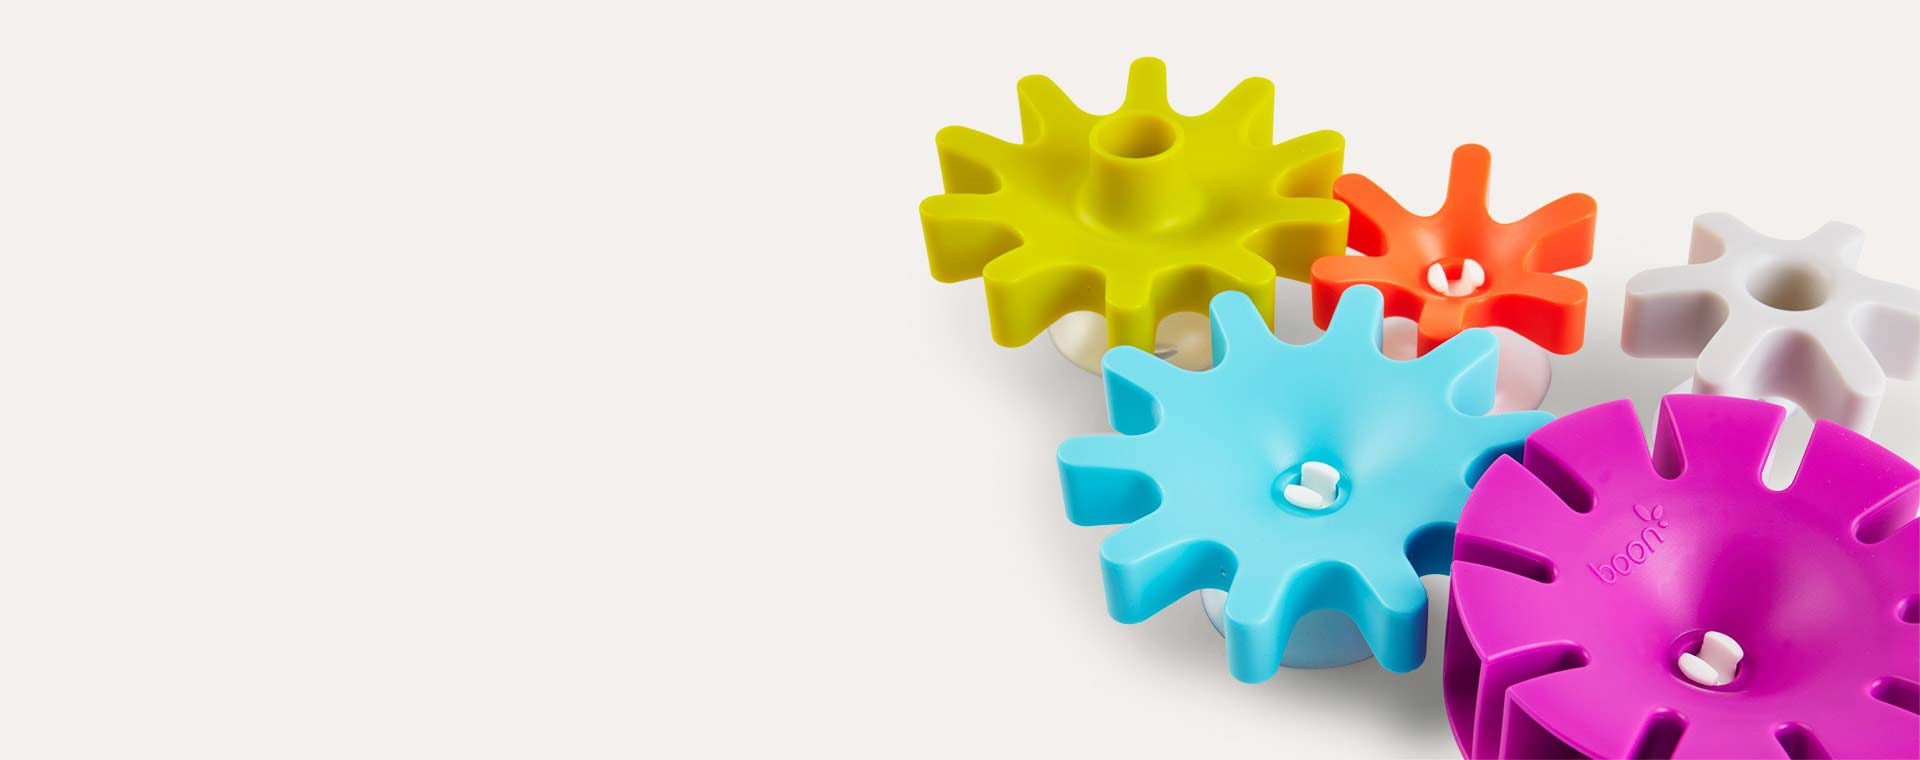 Multi Boon Cogs Water Gears Bath Toy